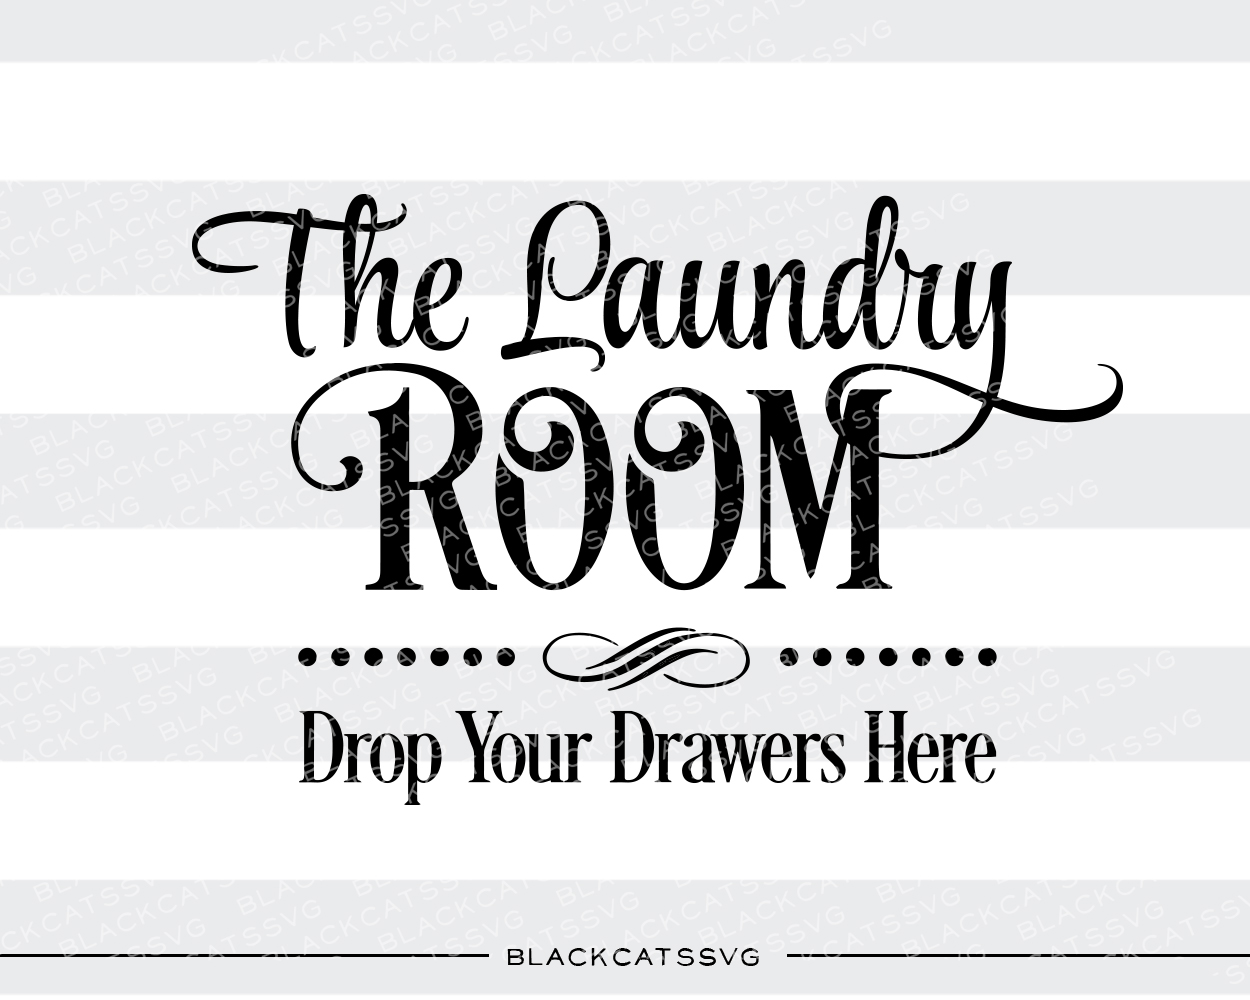 Laundry Room - Drop Your Drawers Here Laundry Room Craft Cut File By BlackCatsSVG